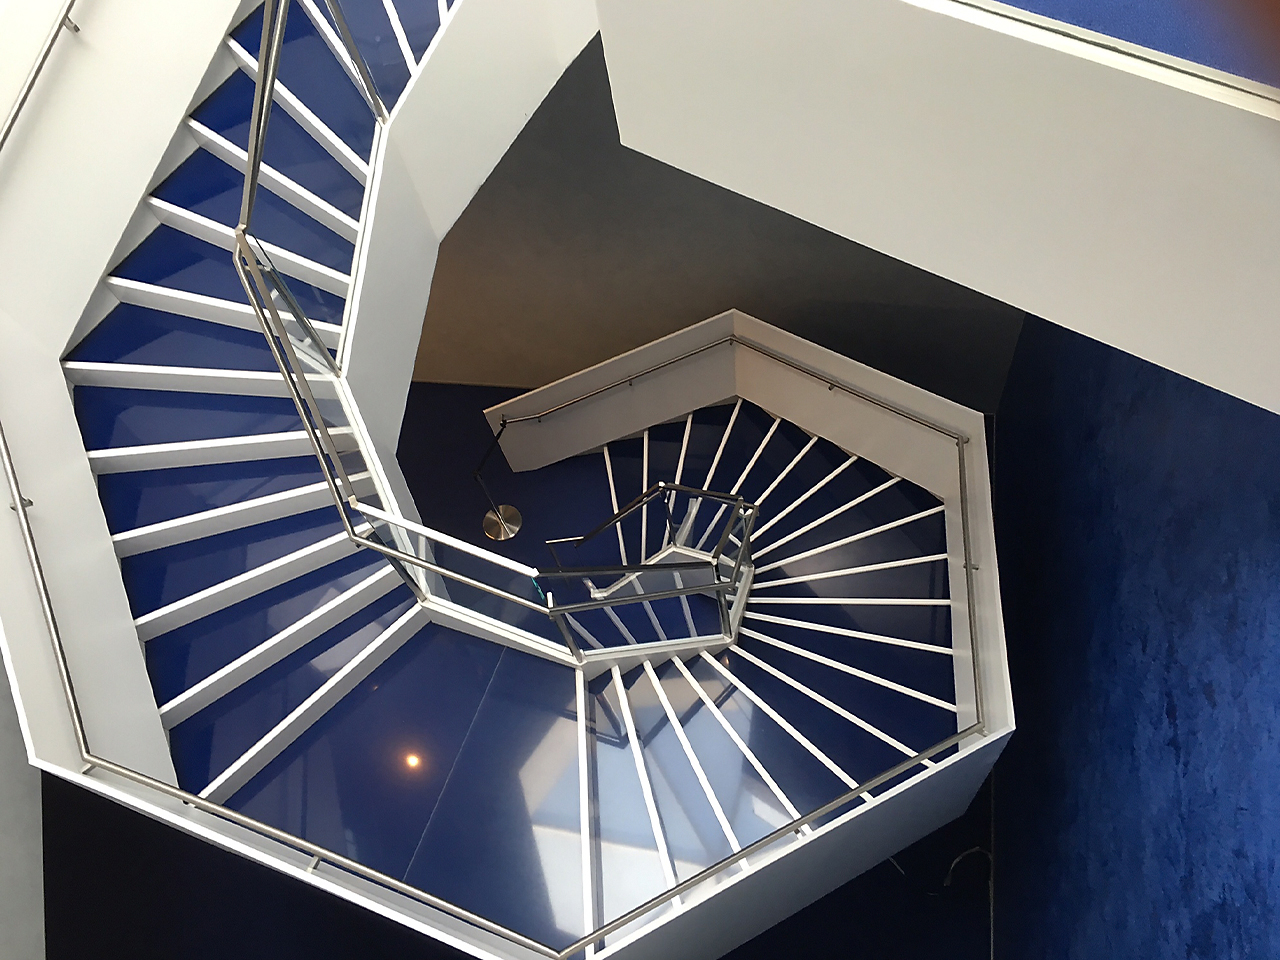 blue and white spiral staircase in the Aga Khan Museum